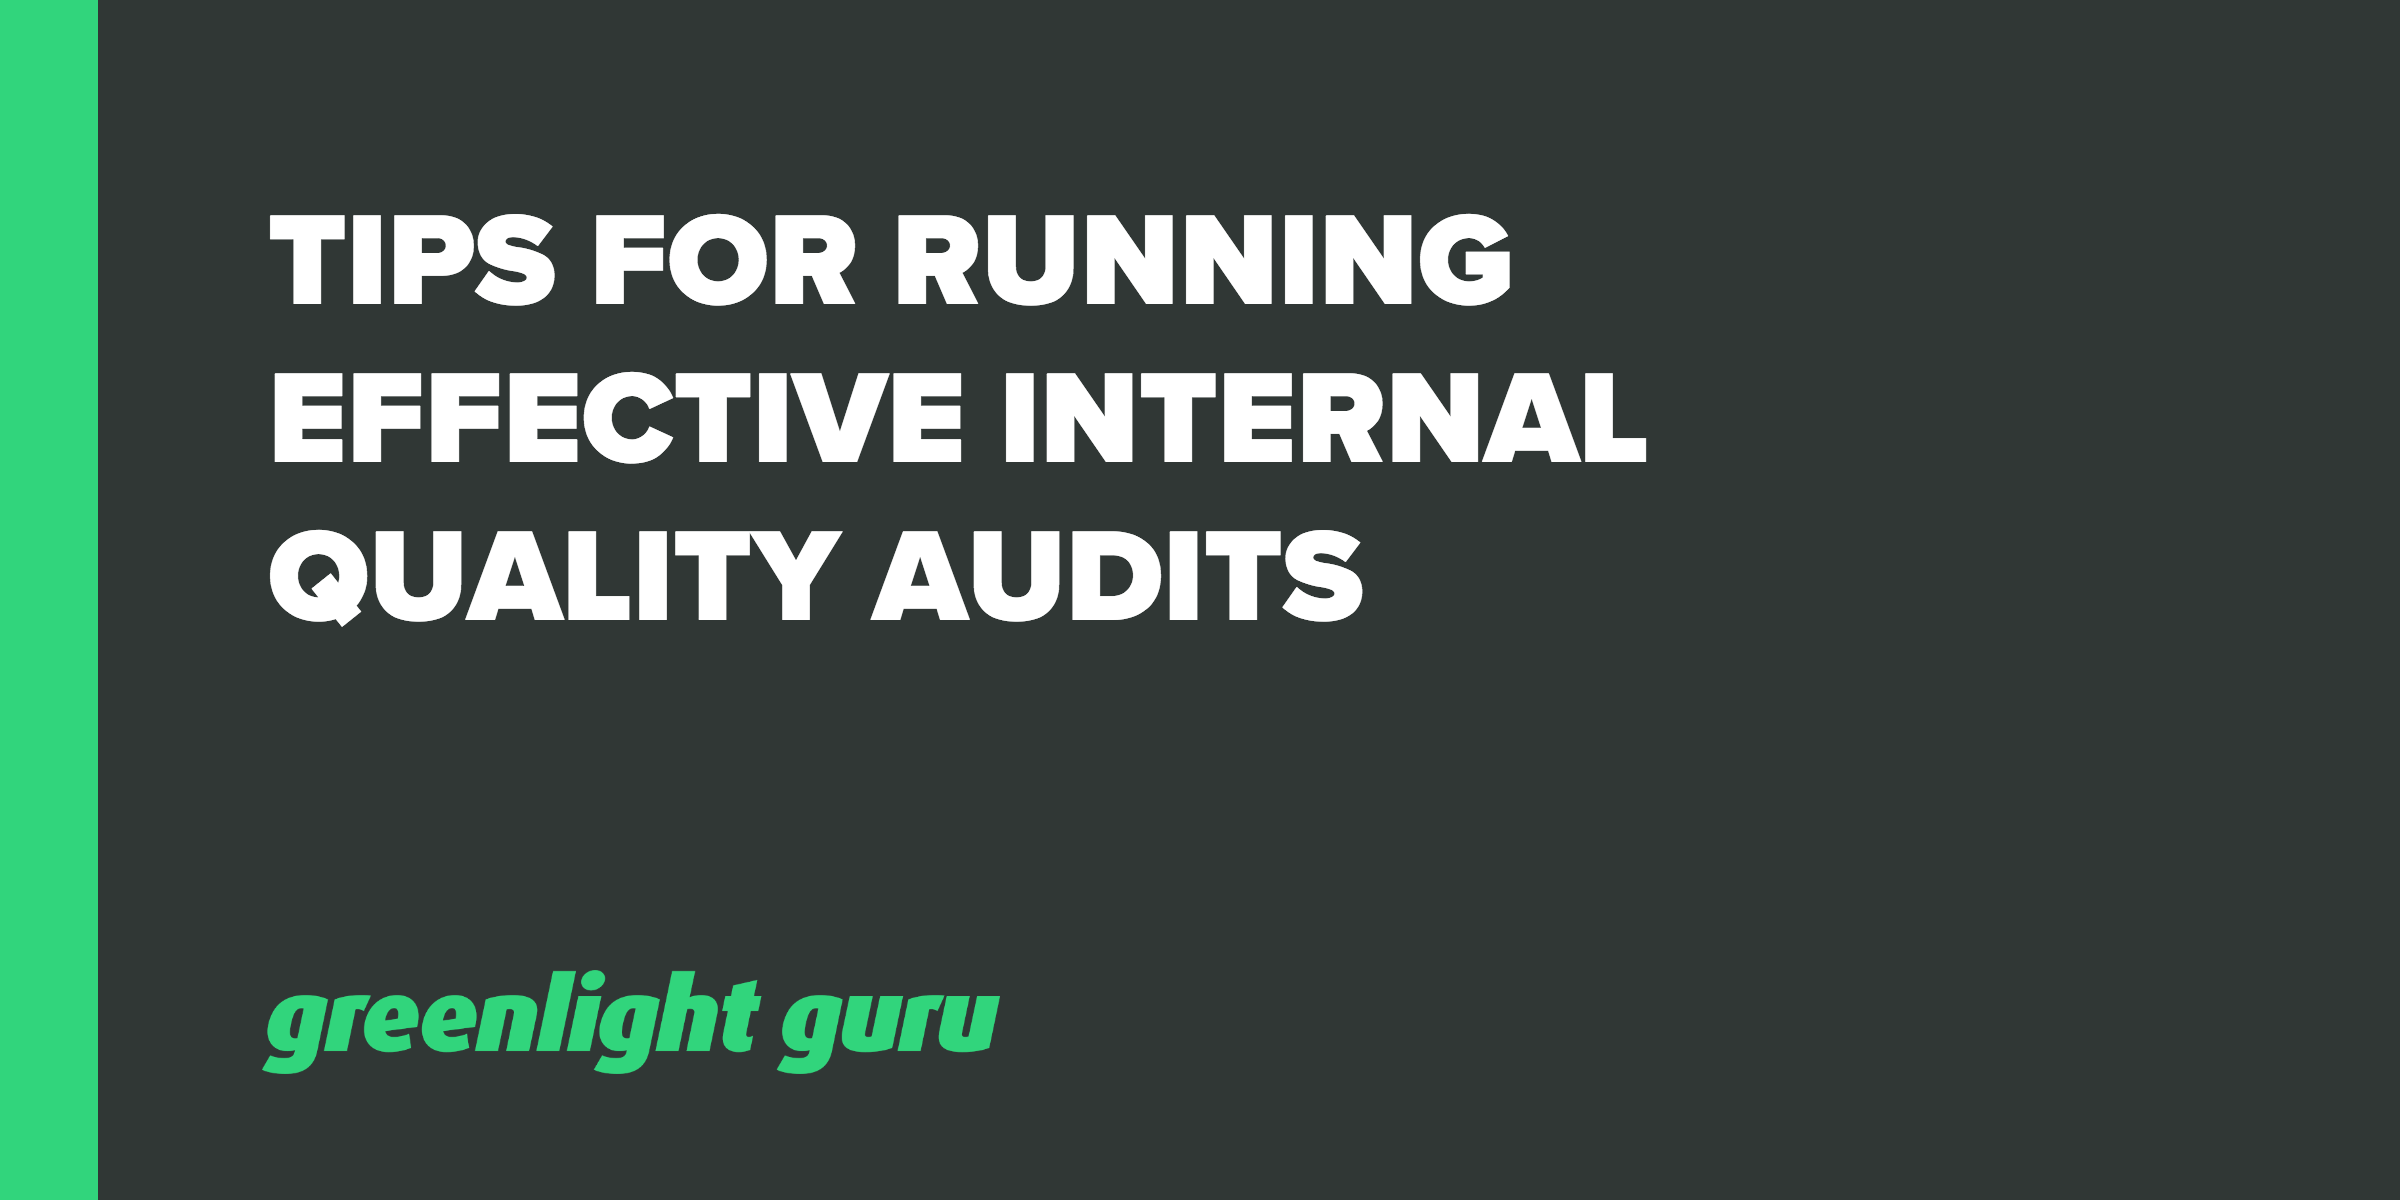 Tips for Running Effective Internal Quality Audits - Featured Image